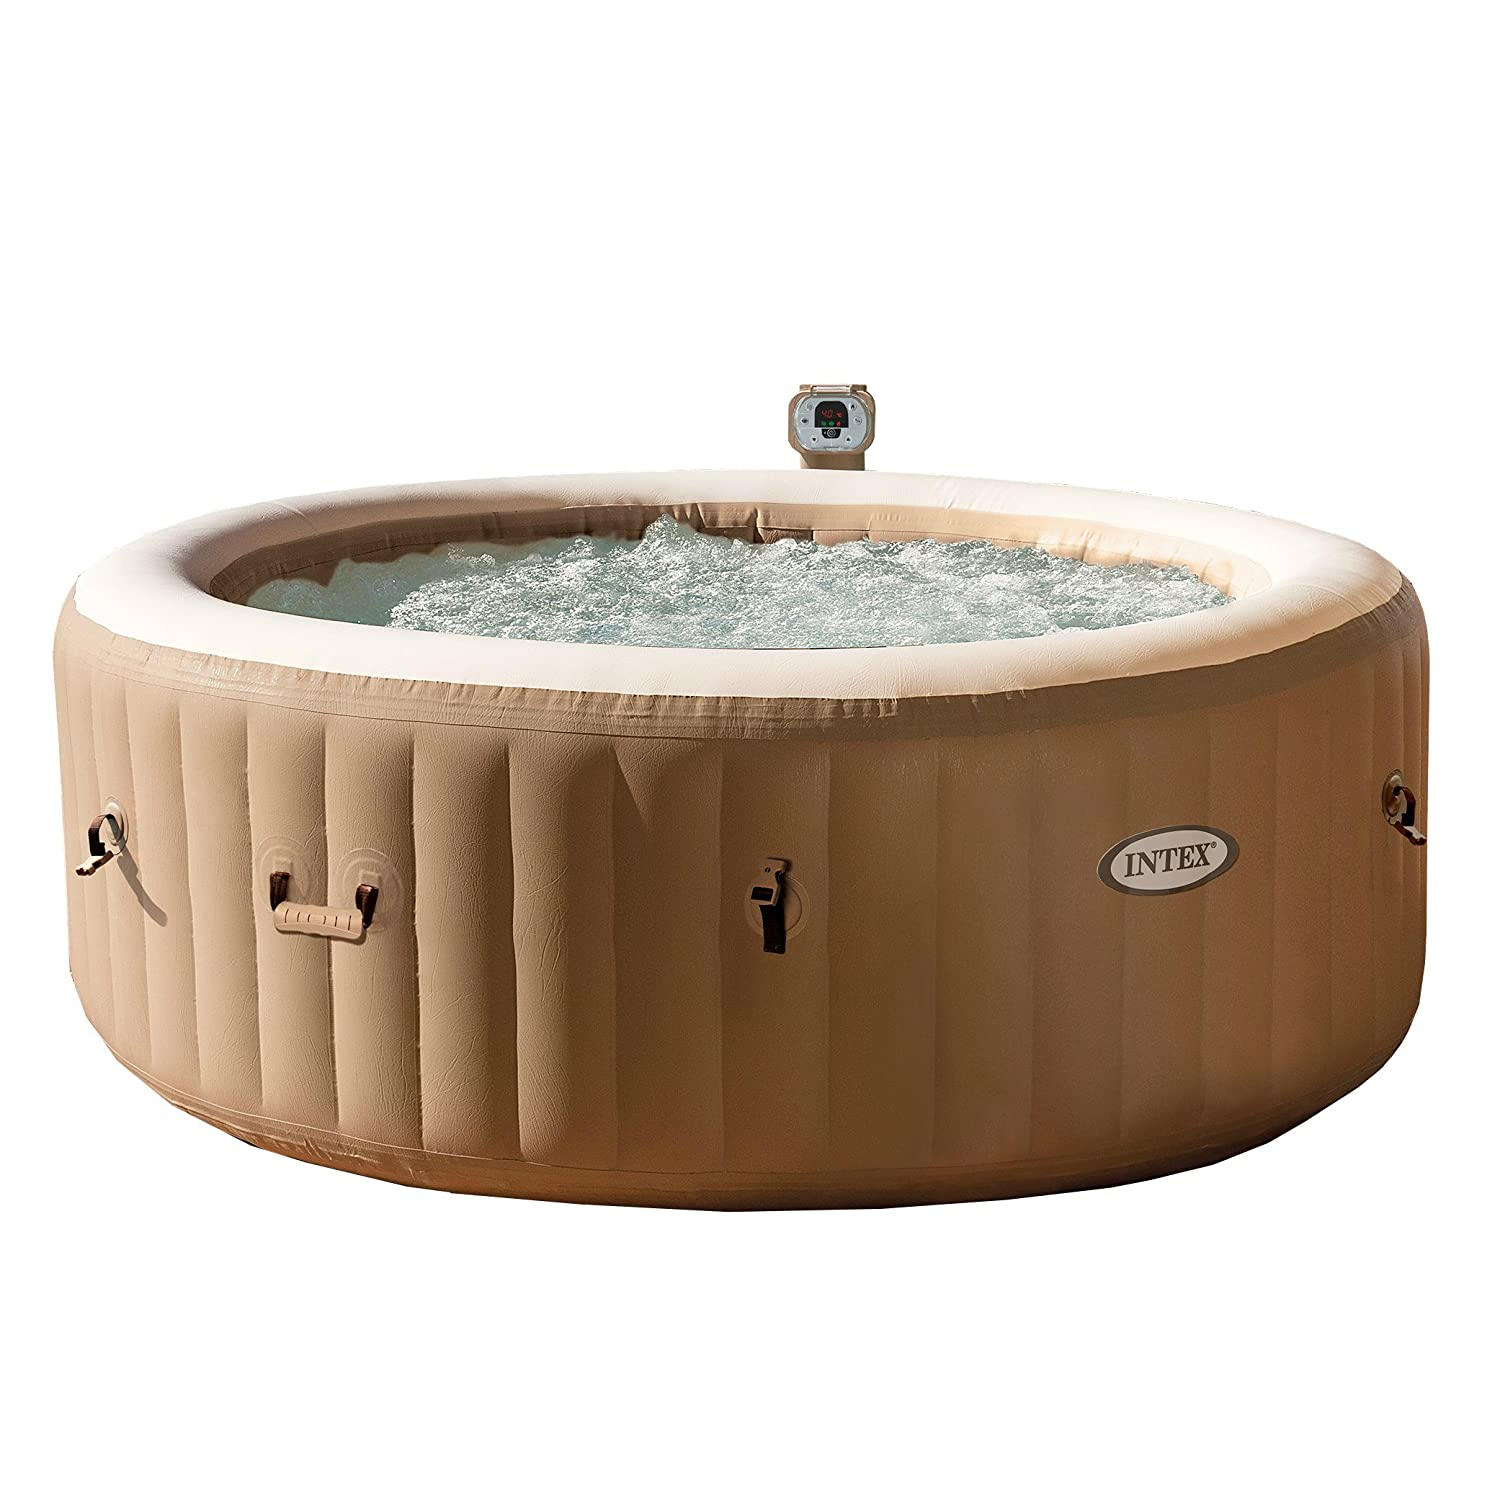 soothing on ready sale minutes intex pamper in bubble deflated portable tubs storage pin and spa with tub a inflatable for backyard p hot her easy own mom jets patio